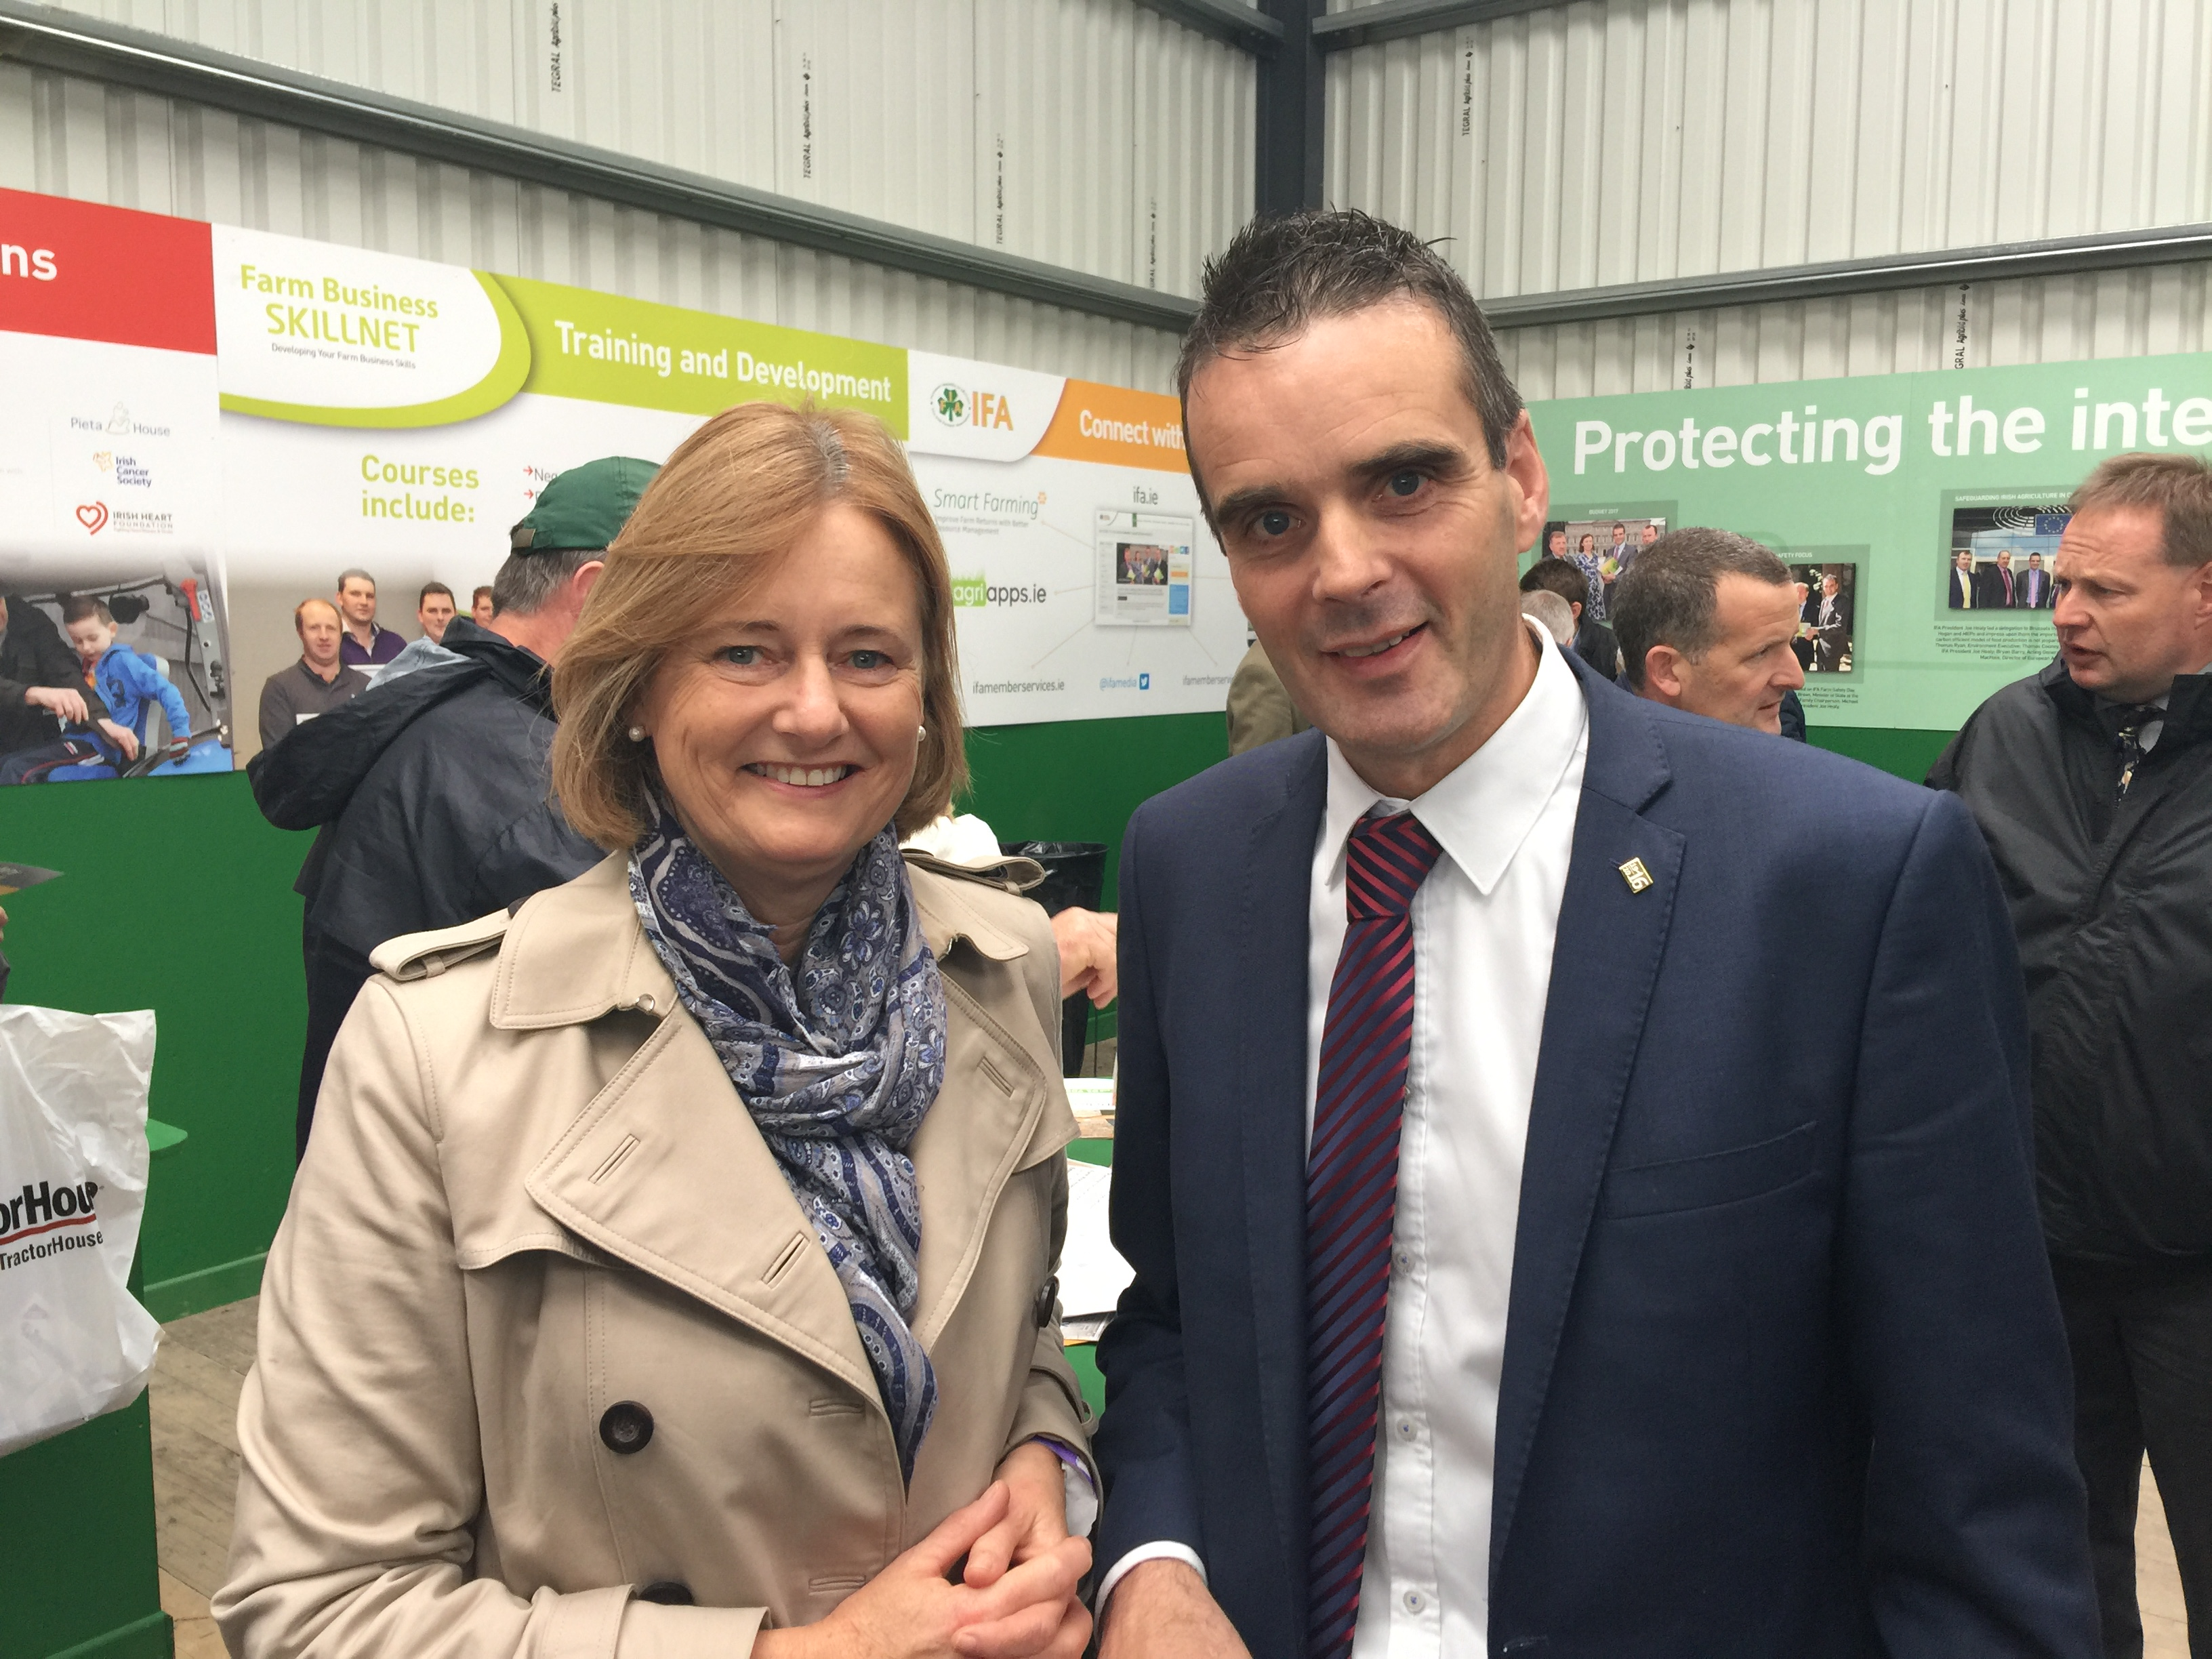 Catching up with Joe Healy, President of the IFA at the Ploughing Championships in Screggan, Co. Offaly.